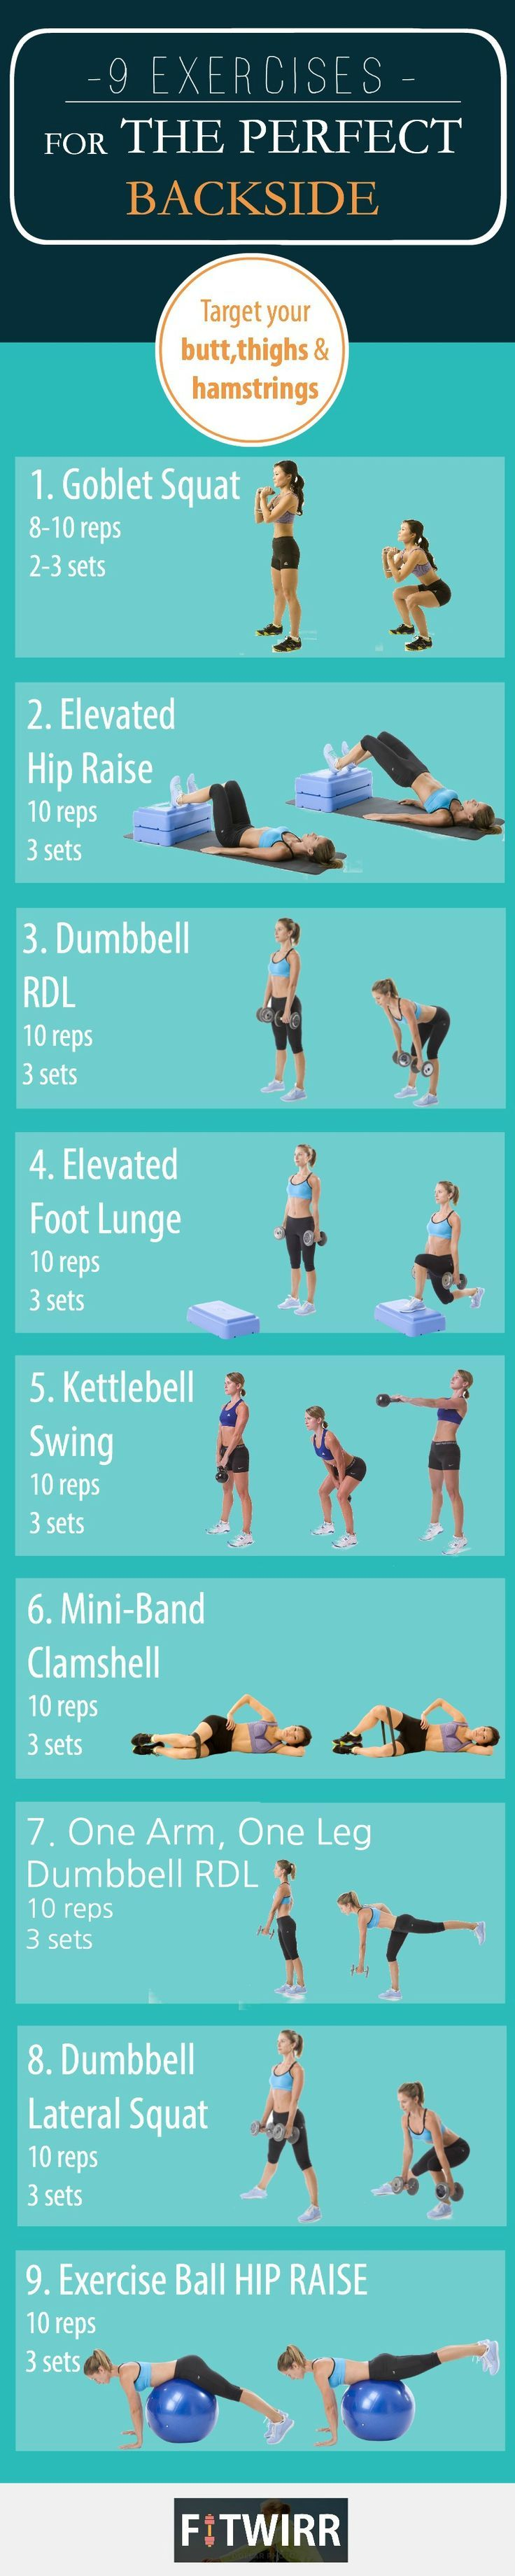 9 butt exercises to sculpt and lift your backside(glutes). Perform 2-3 sets of each exercises for maximum results.